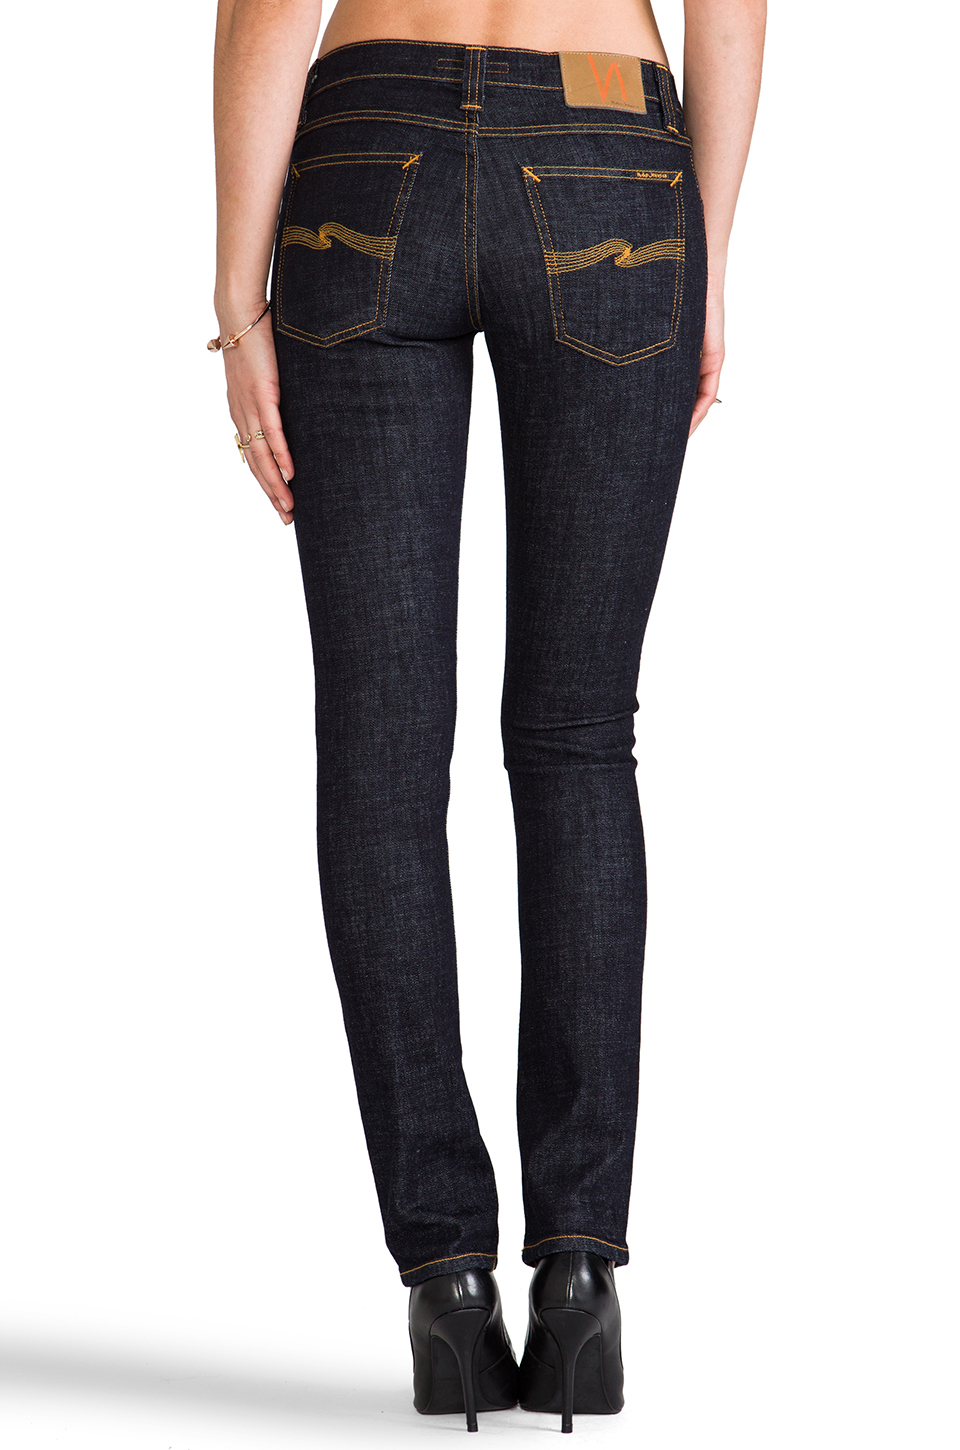 Tight Skinny Jeans For Women